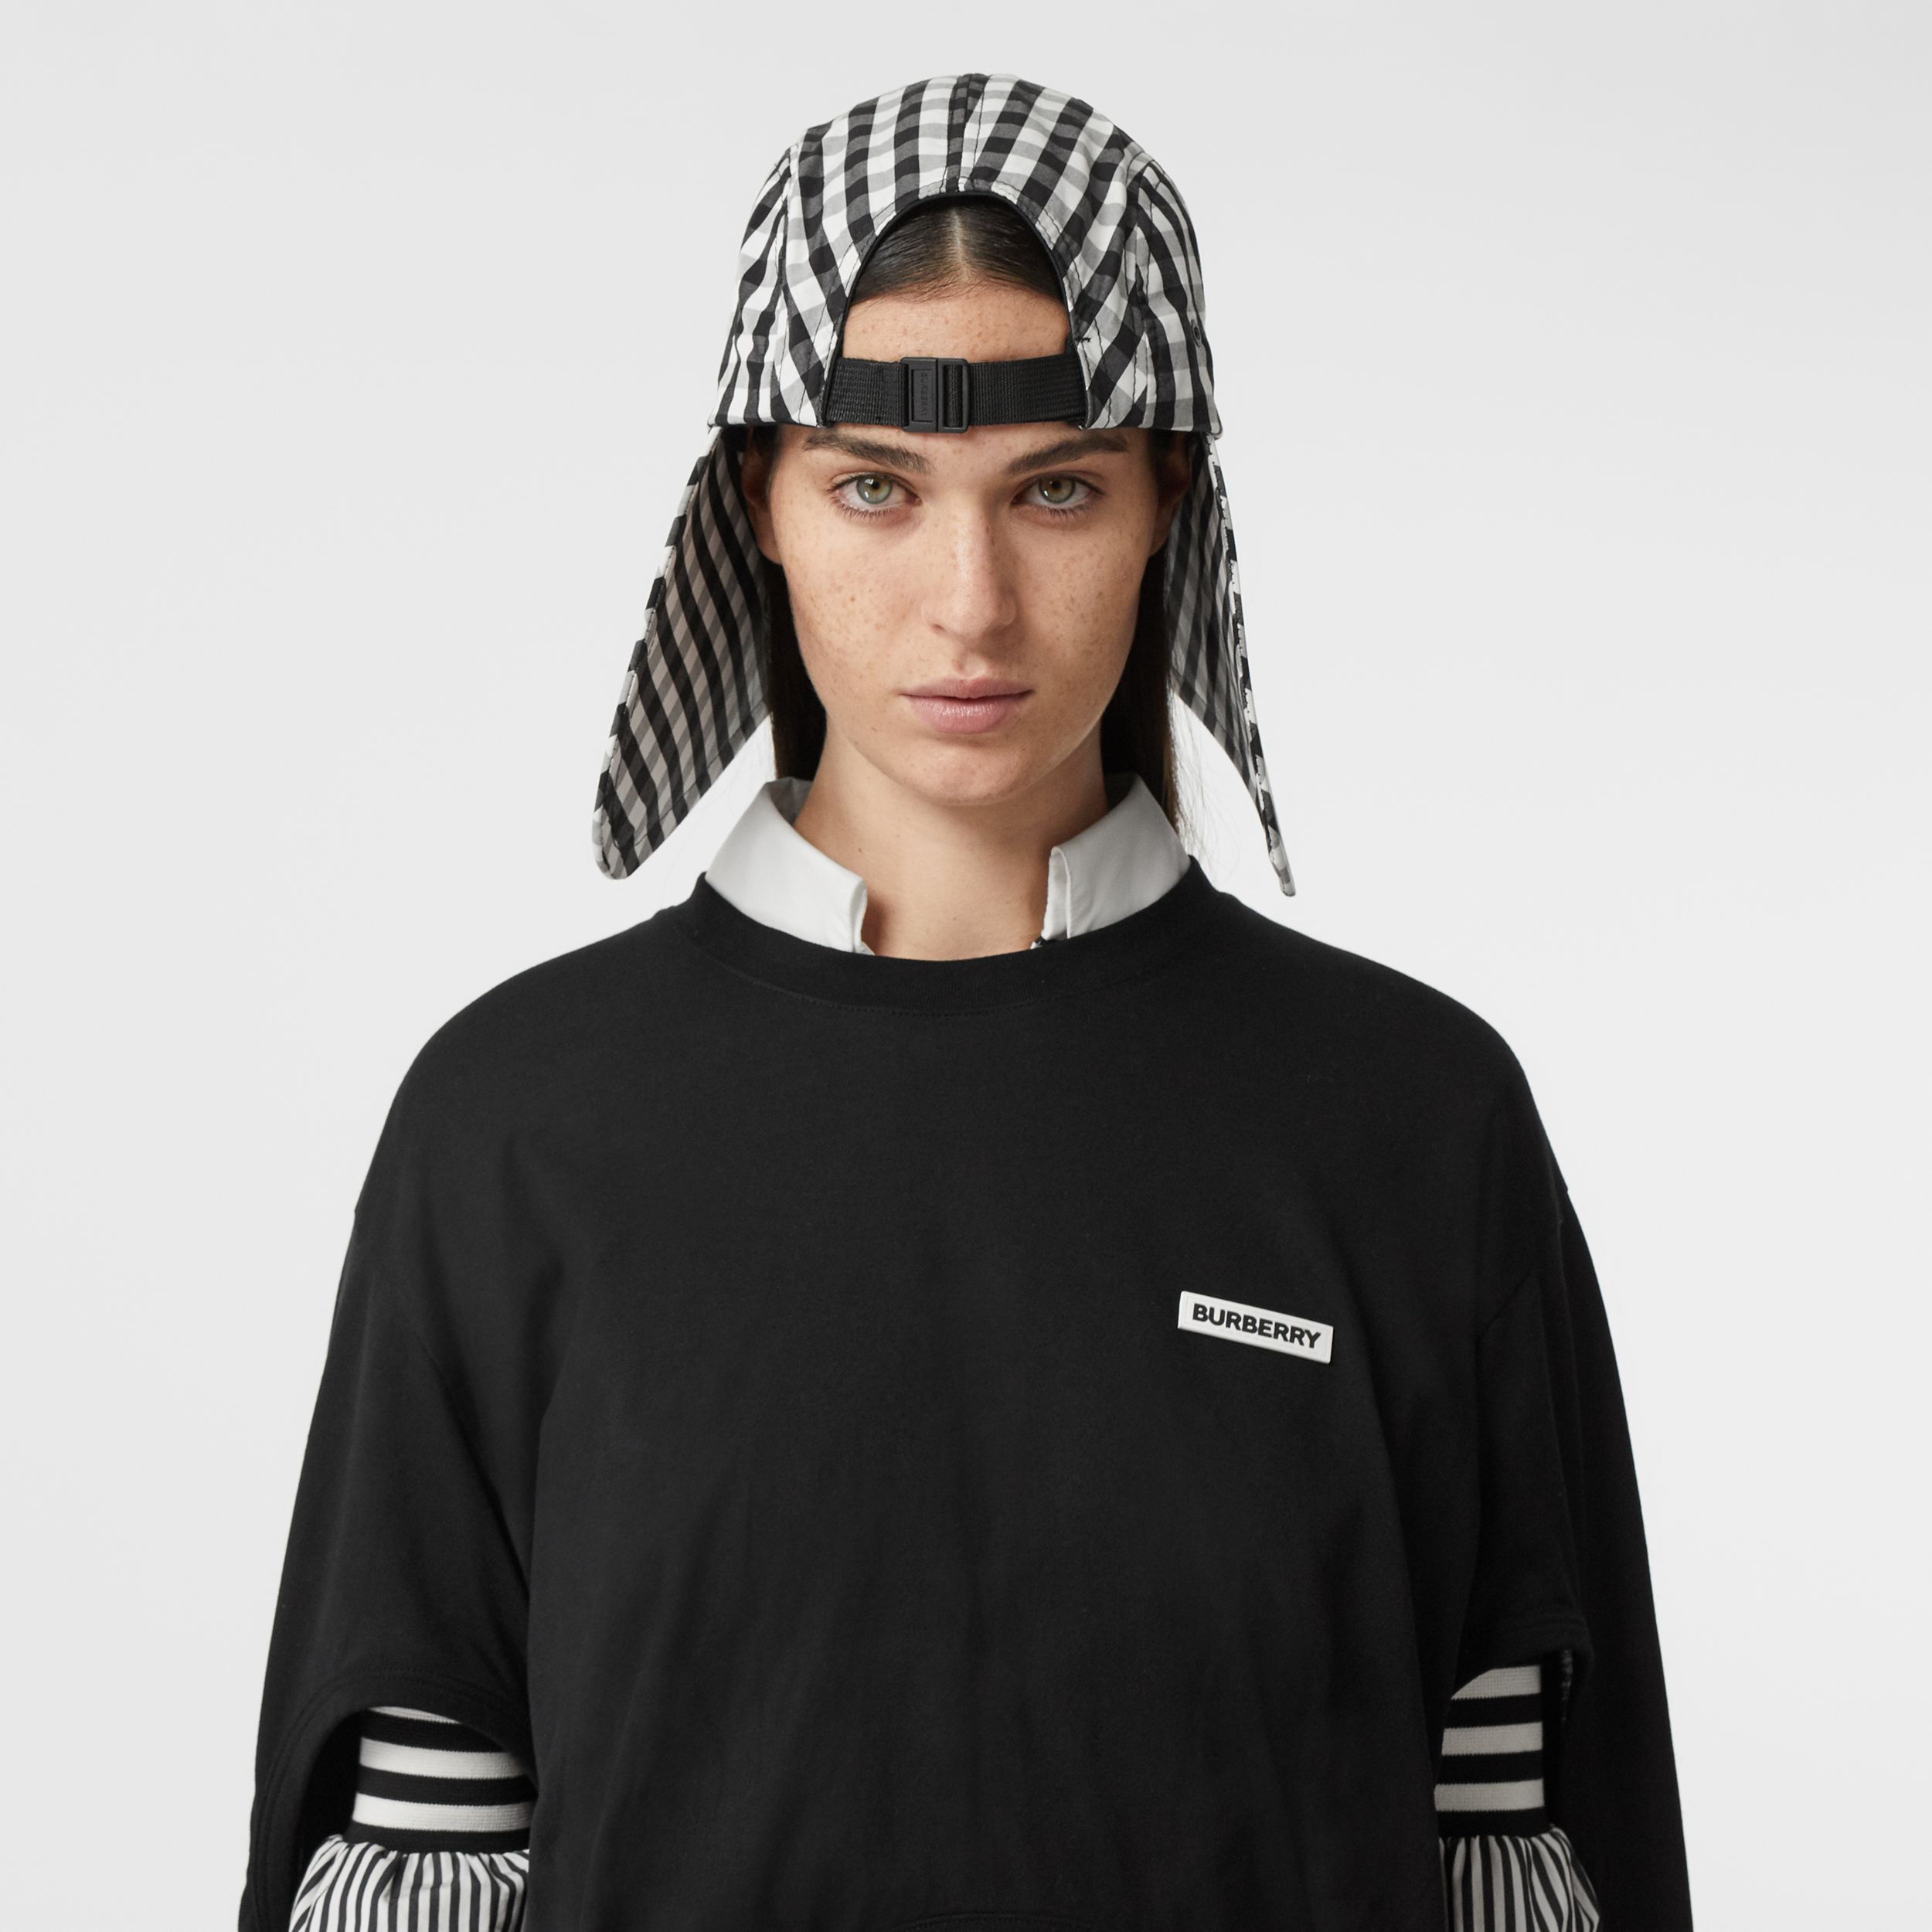 Logo Appliqué Gingham Cotton Bonnet Cap in Black/white | Burberry Australia - 3